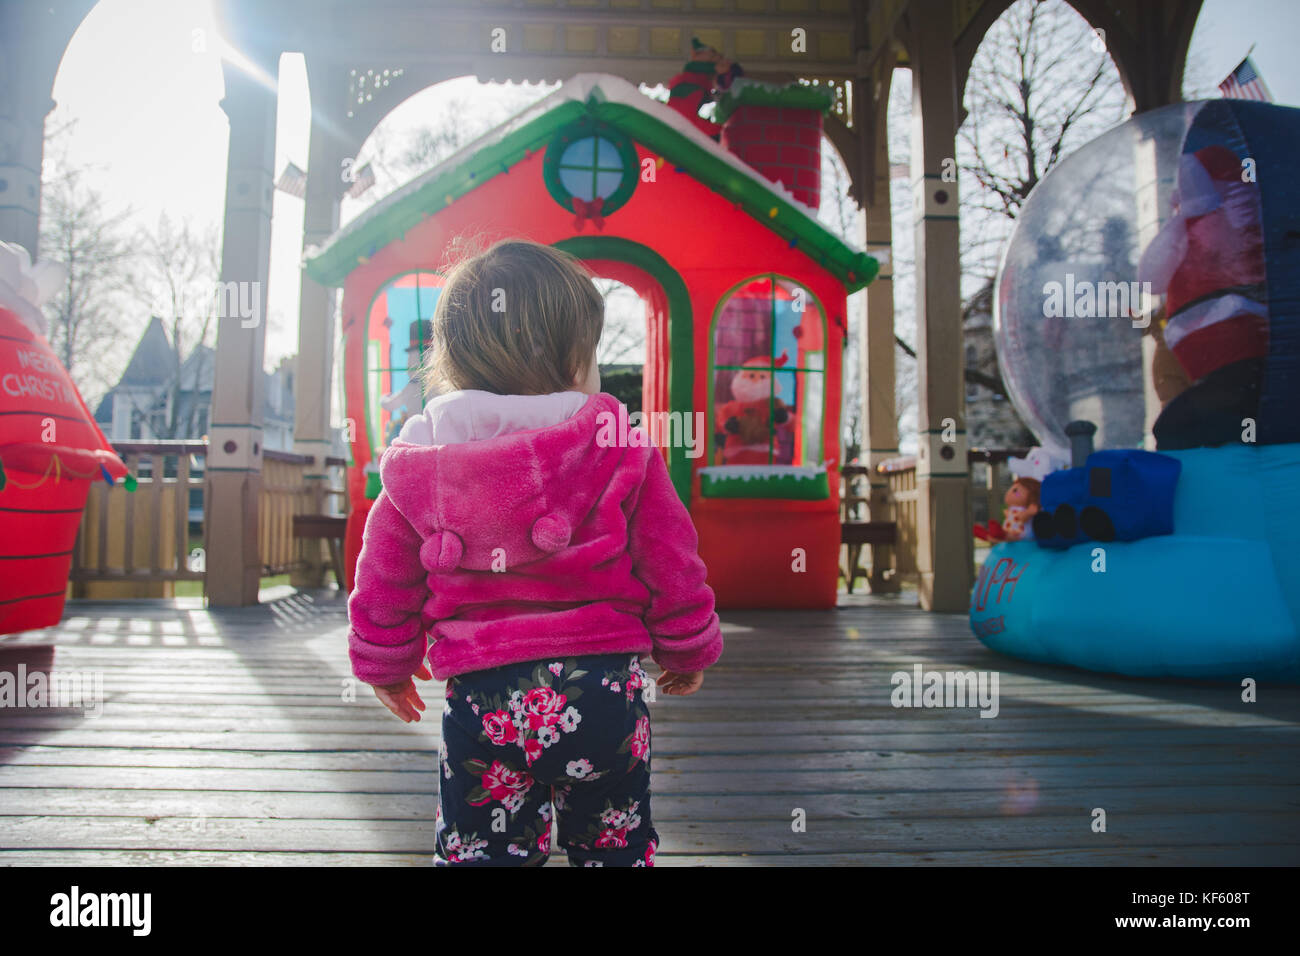 Toddler walking toward Christmas or holiday displays. Stock Photo